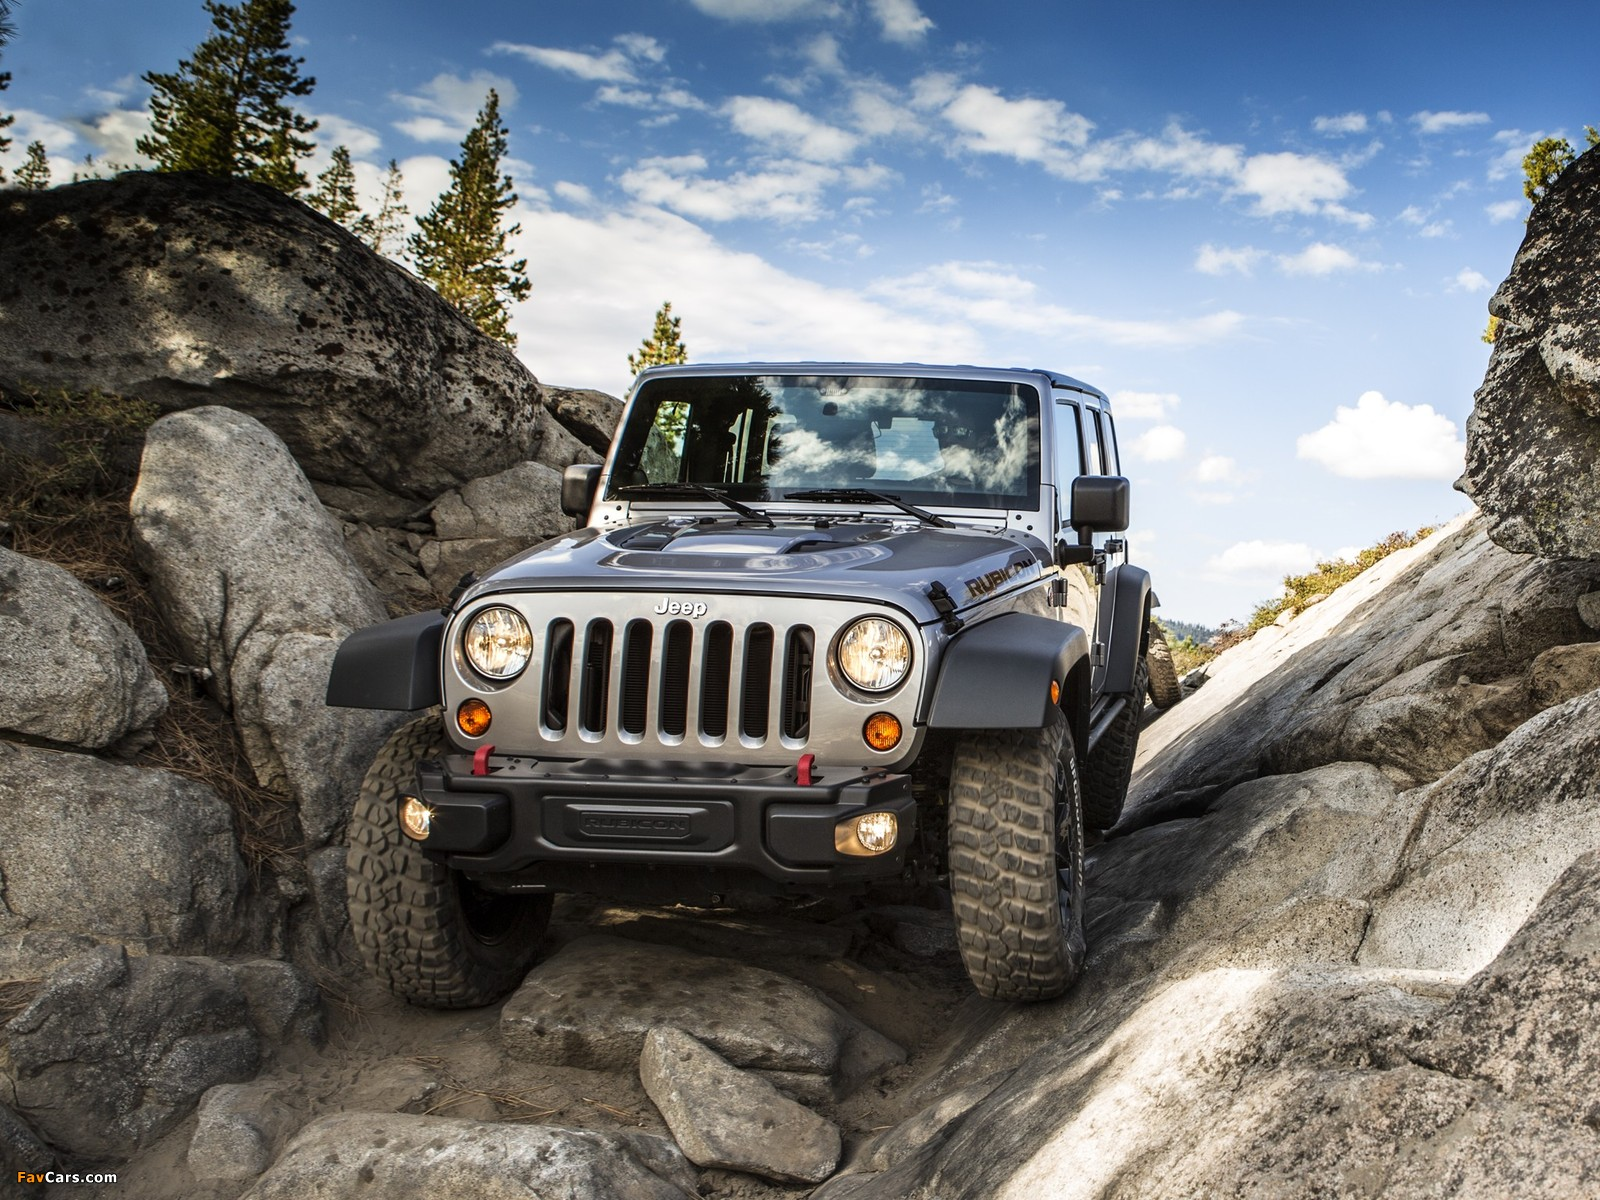 Jeep Wrangler Unlimited Rubicon 10th Anniversary (JK) 2013 images (1600 x 1200)